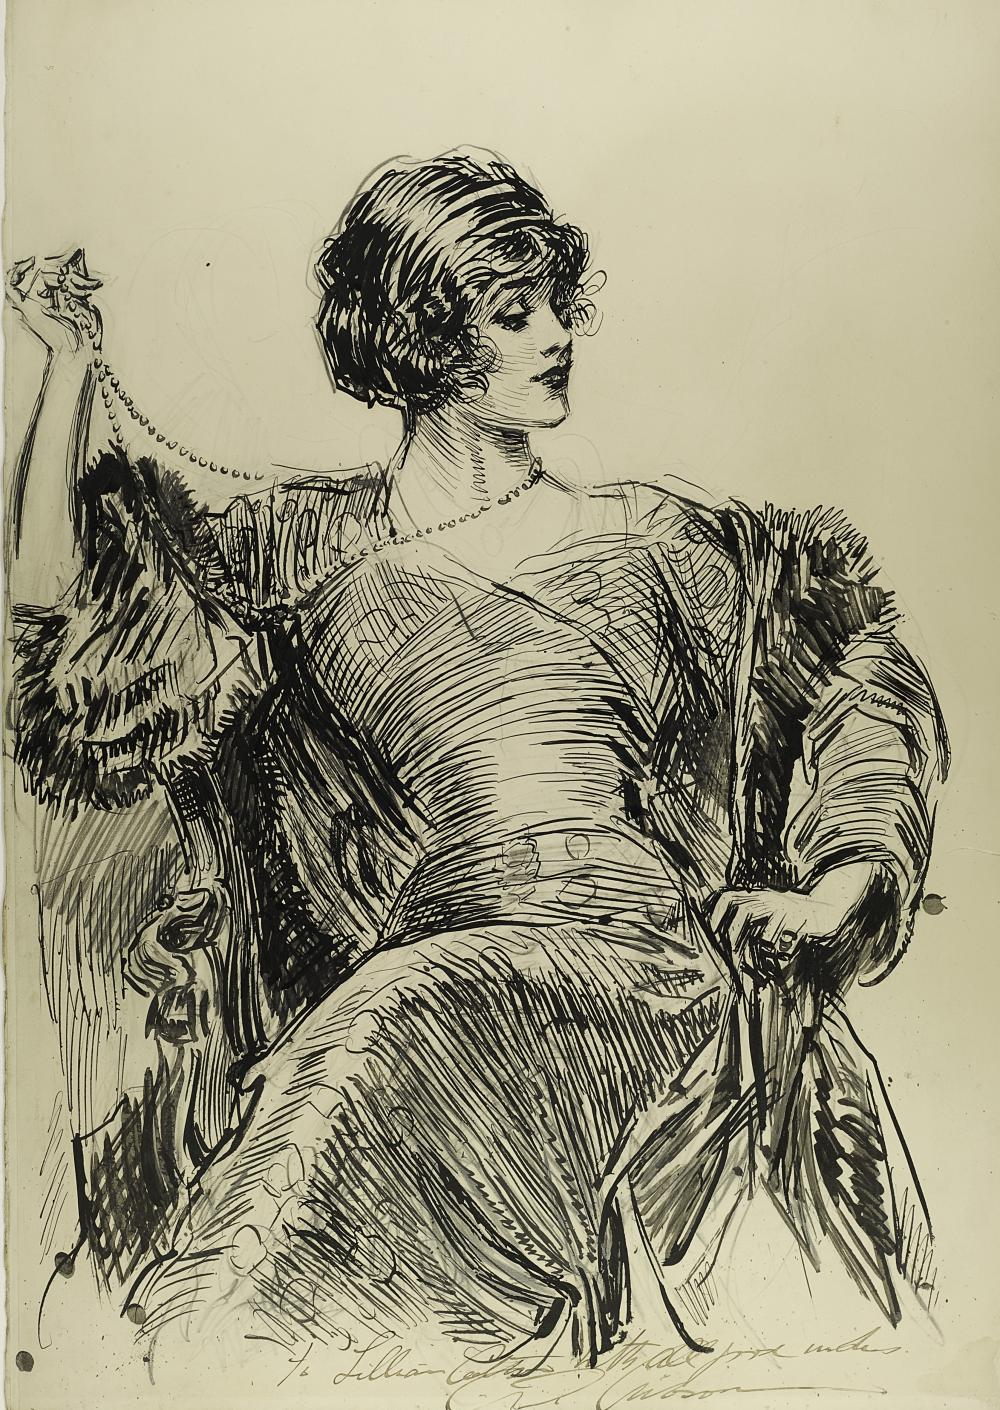 Charles Dana Gibson, American (1867-1944), Portrait of a Woman